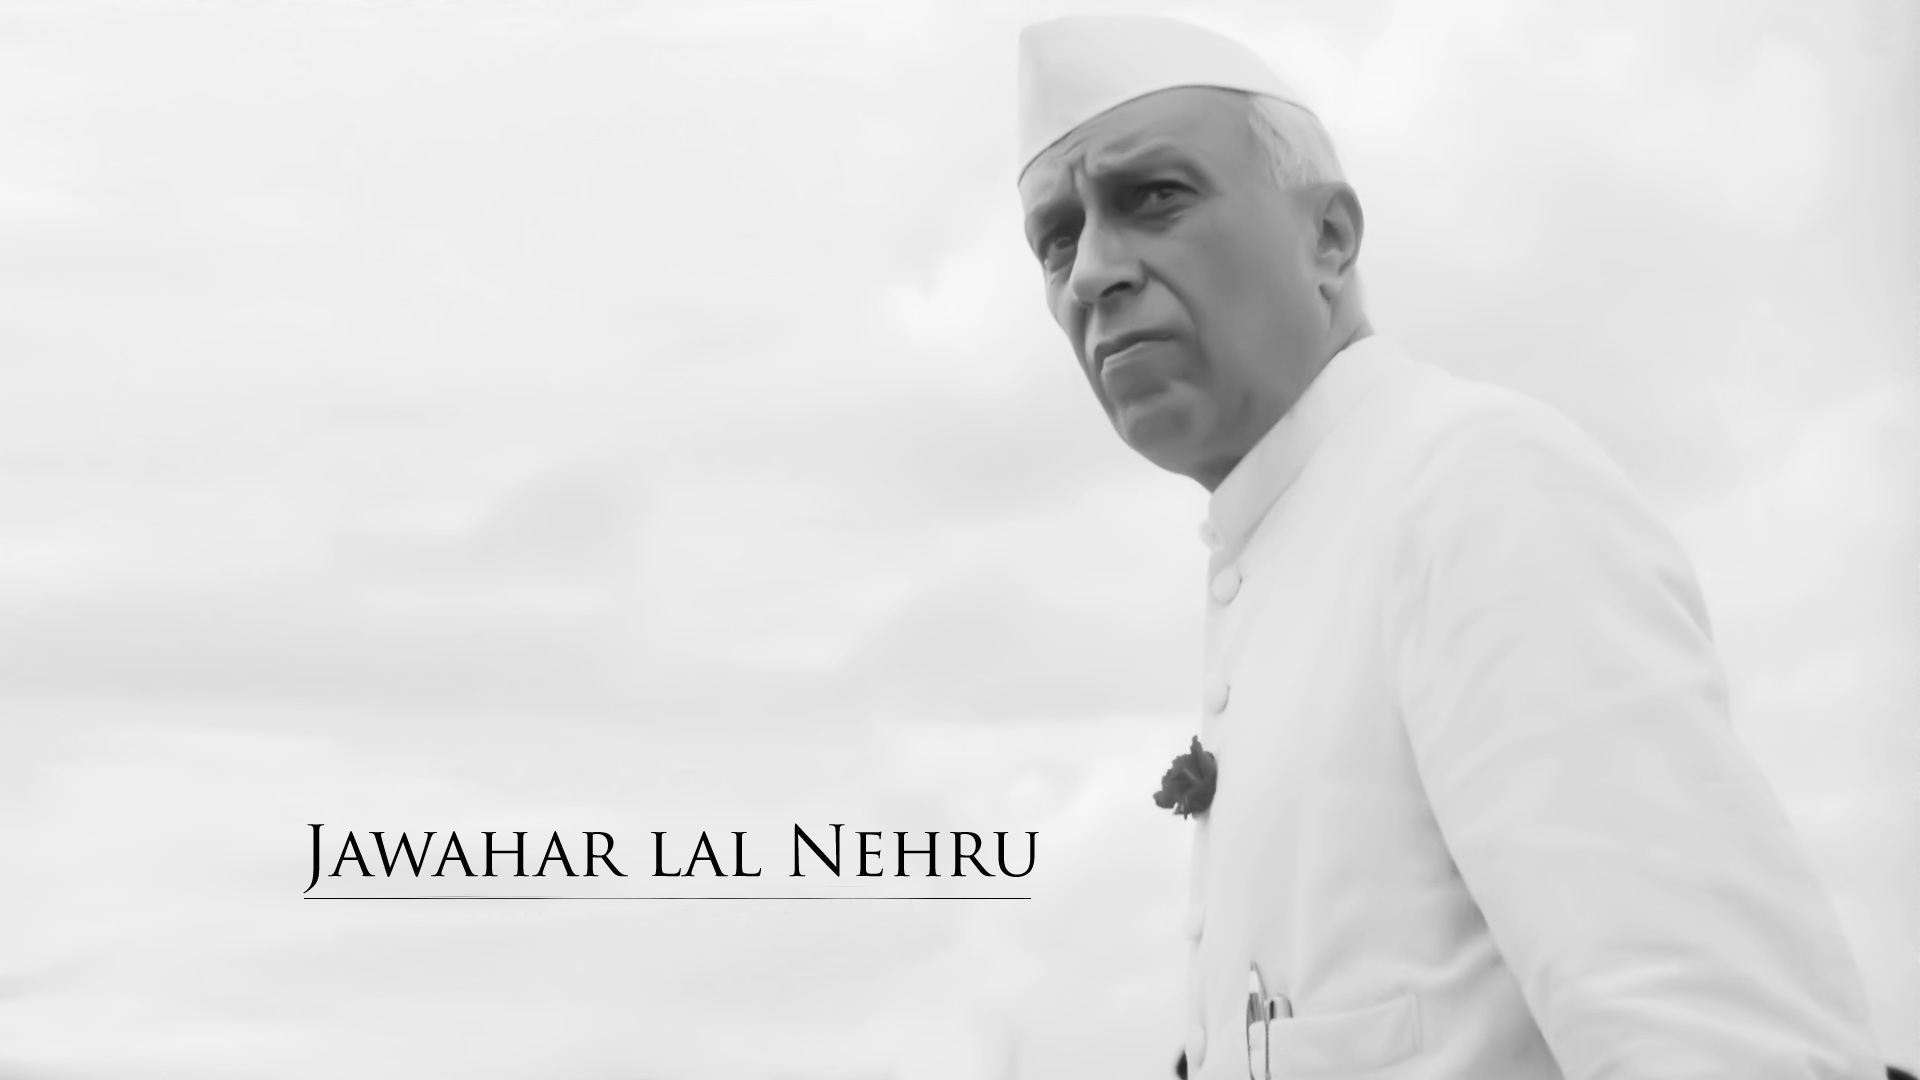 essay on nehru ji and india Nehru's role in the freedom of india: nehru's nationalism and his role in the freedom movement are closely inter-related, since it was the nature of nehru's.